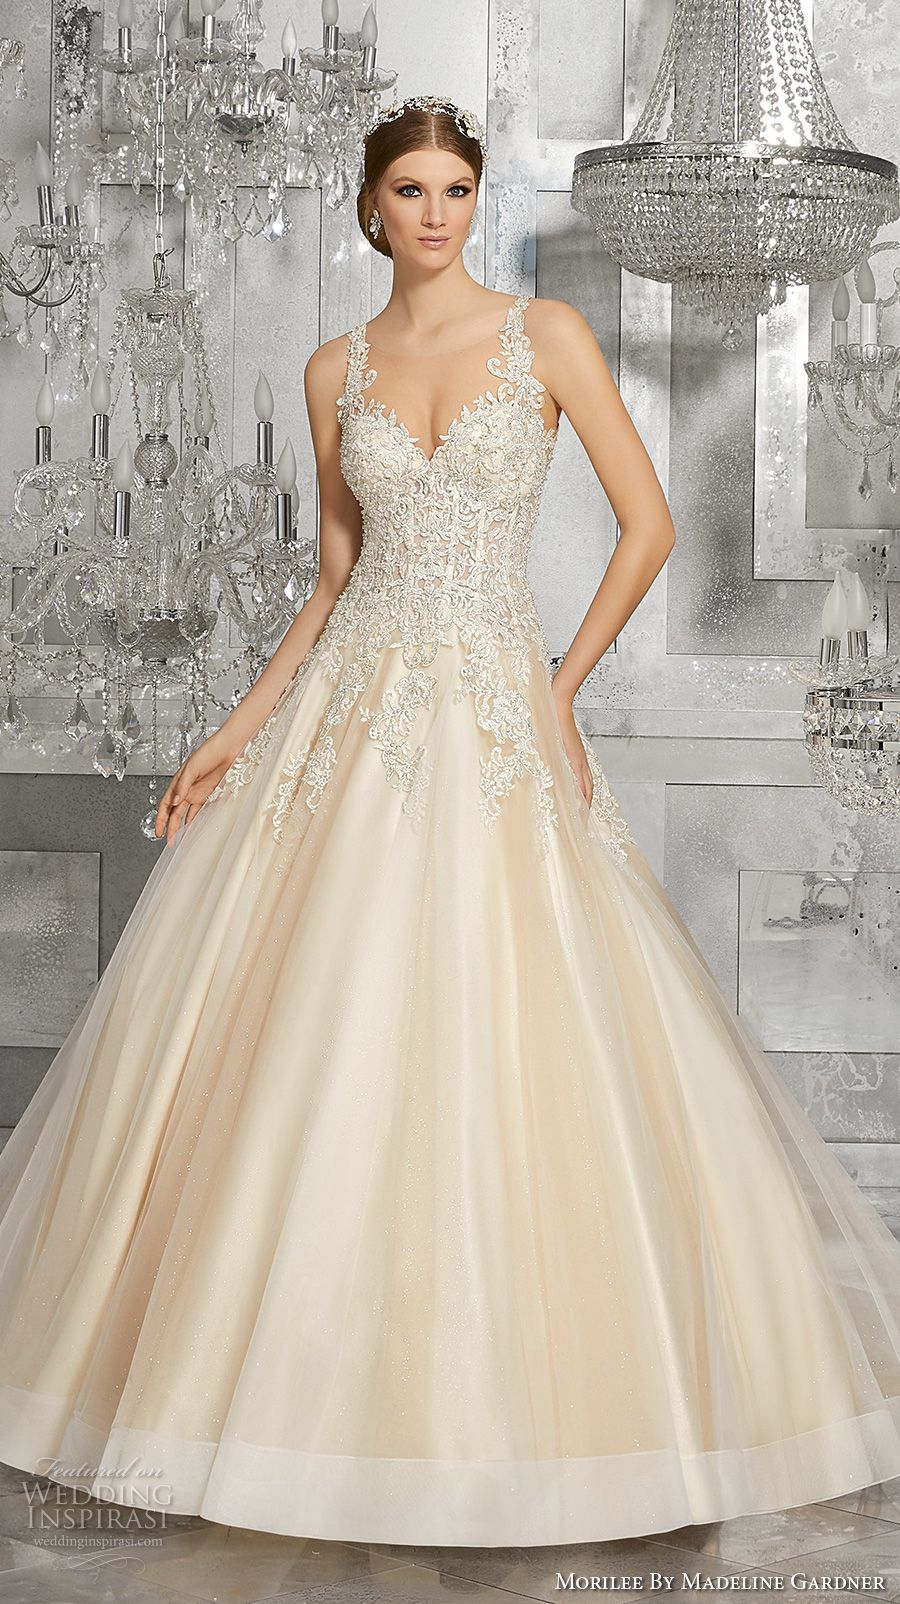 Mori lee madeline gardner wedding dress  Morilee by Madeline Gardner Fall  Wedding Dresses  Romantic